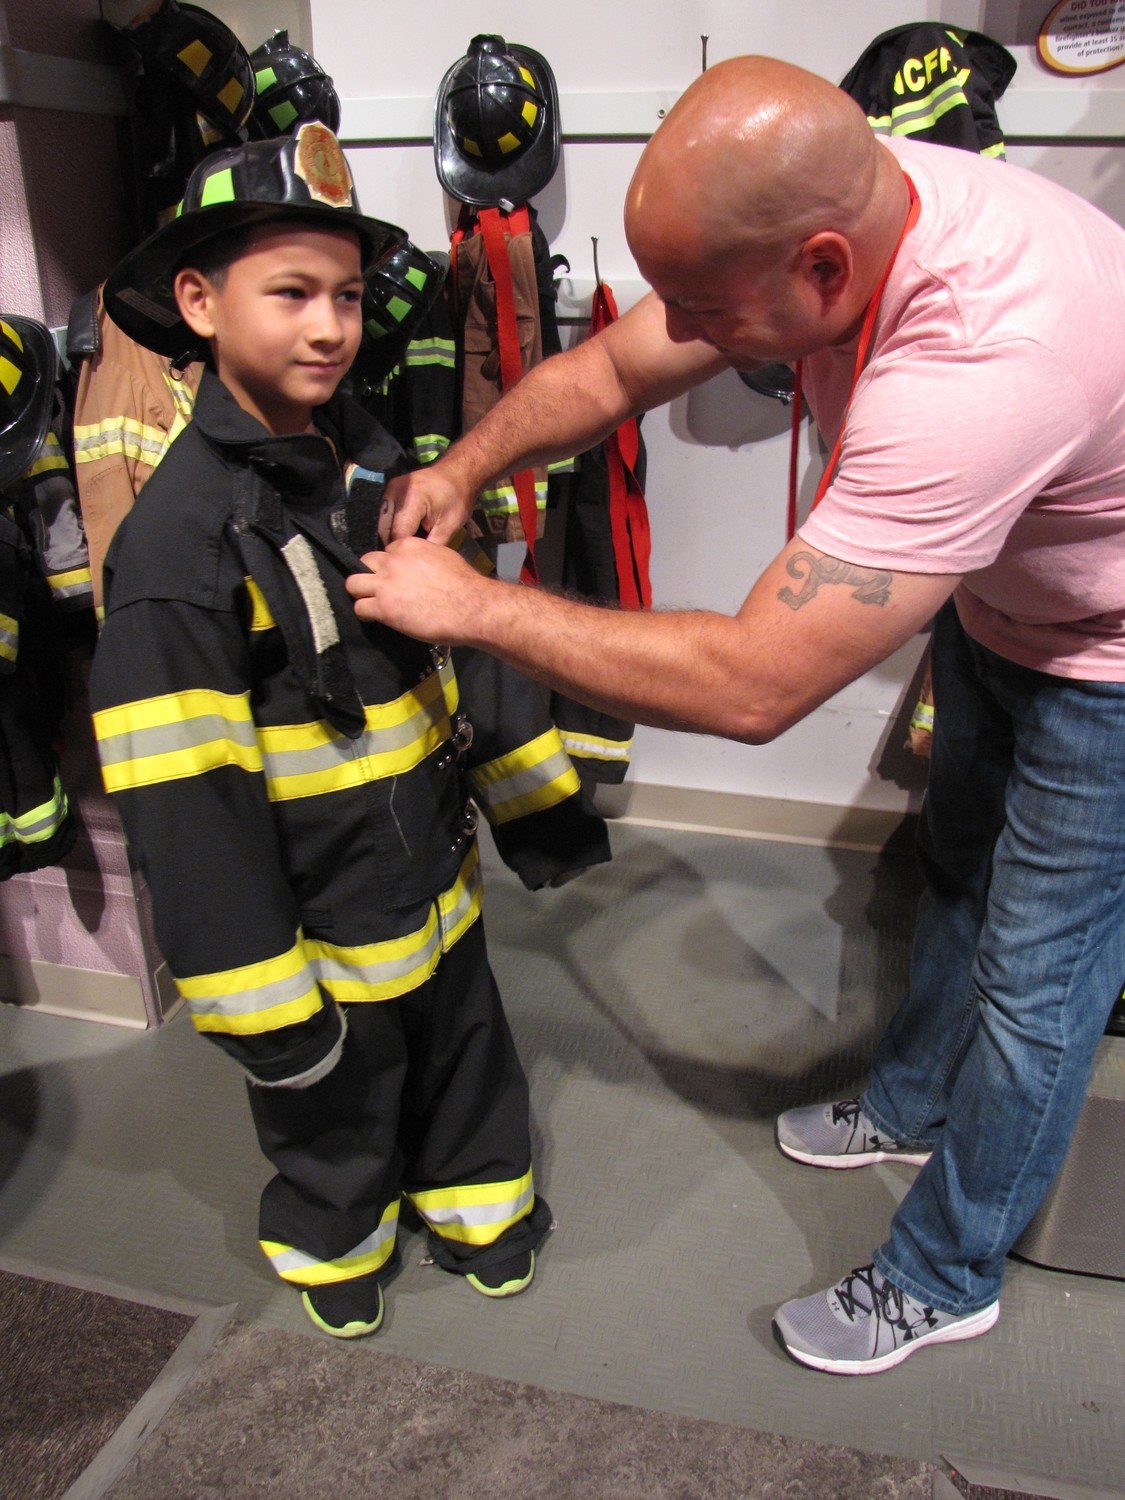 Freeporter Luis Marin, left, helps his third grader, Dylan Marin, 8, get into the turnout gear available for children to try on at the Nassau County Firefighters Museum and Education Center during the Bayview Avenue visit to the museum.